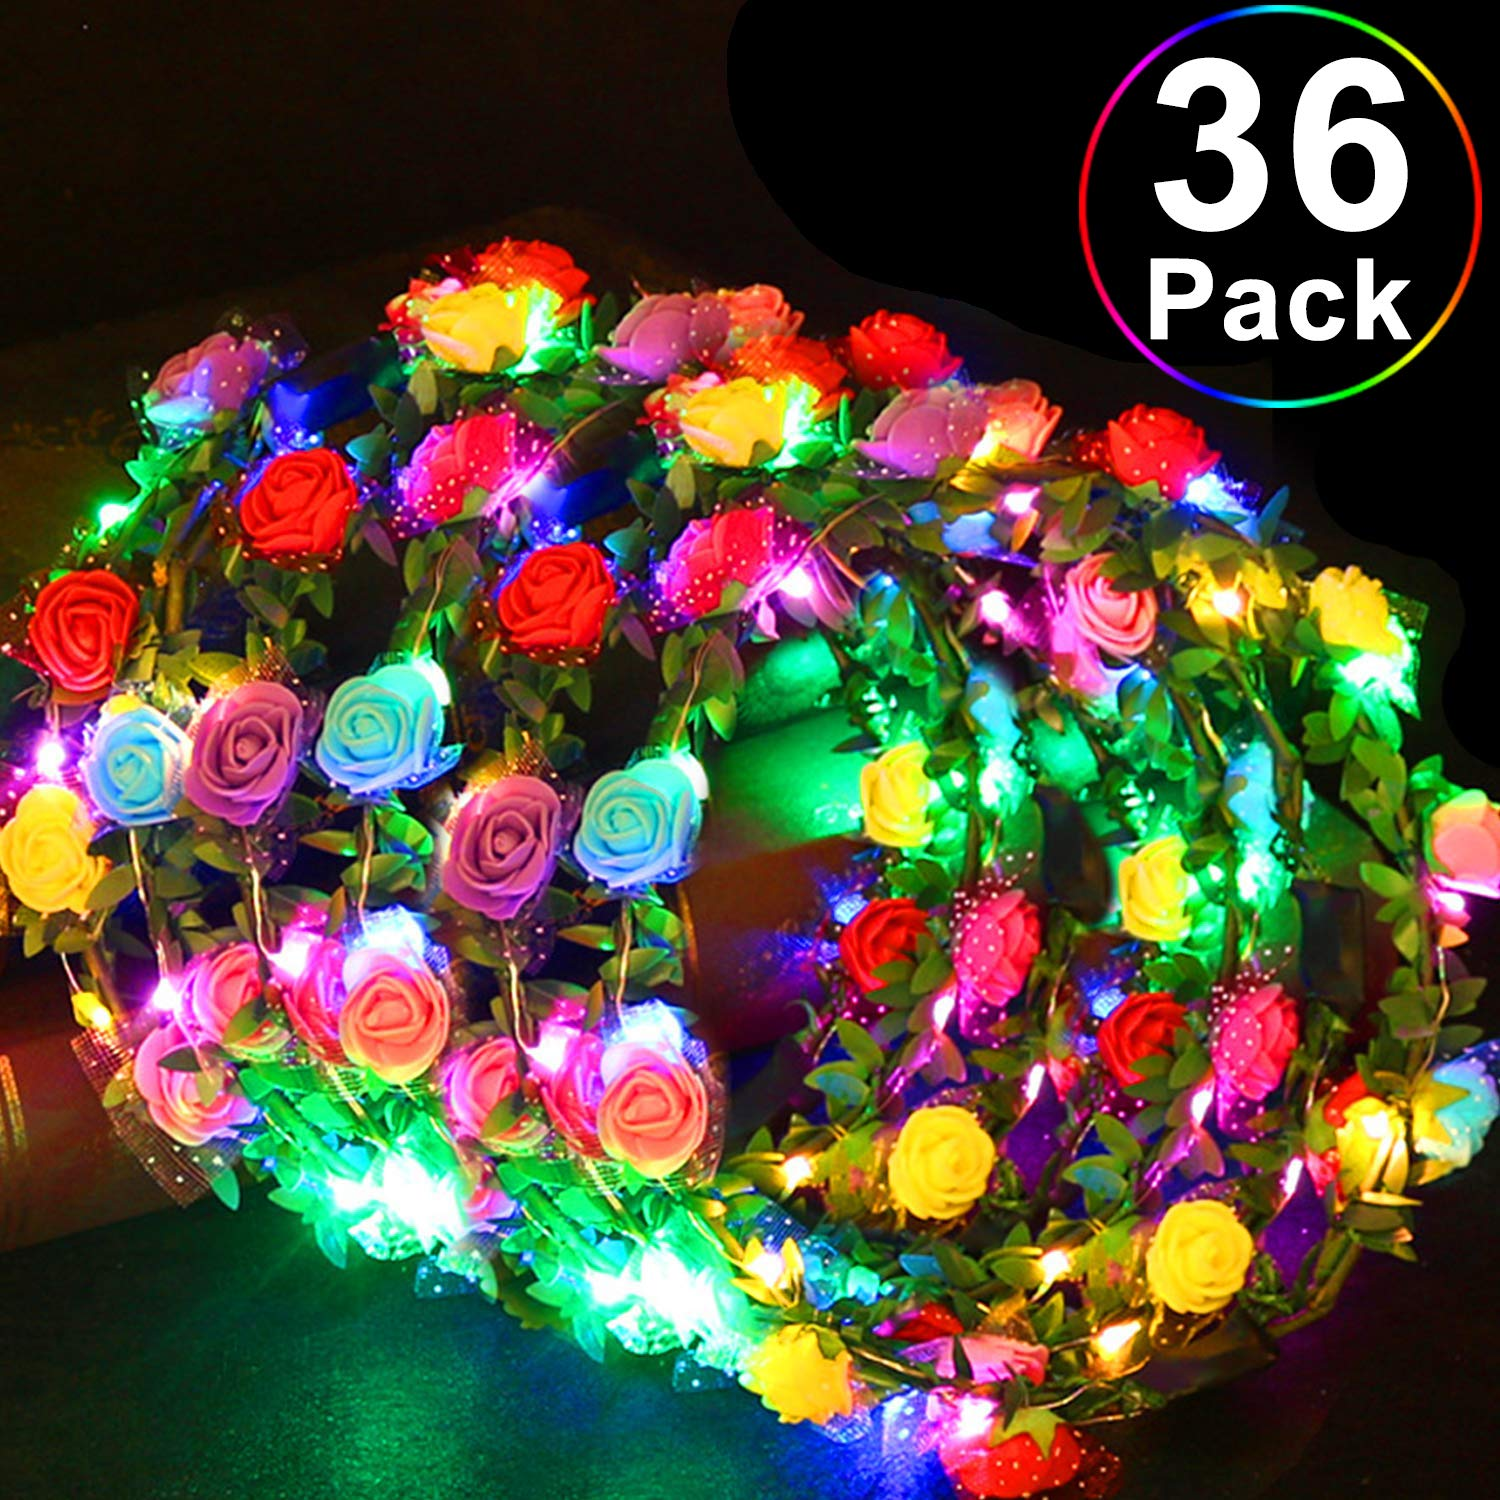 36 Pack Party Favors LED Headband Flower Crowns, Flashing Flower Wreath Headband Glow in The Dark Classroom Party Supplies Adjustable Flower Headband Light Up Toys for Kids Adults Halloween Birthday